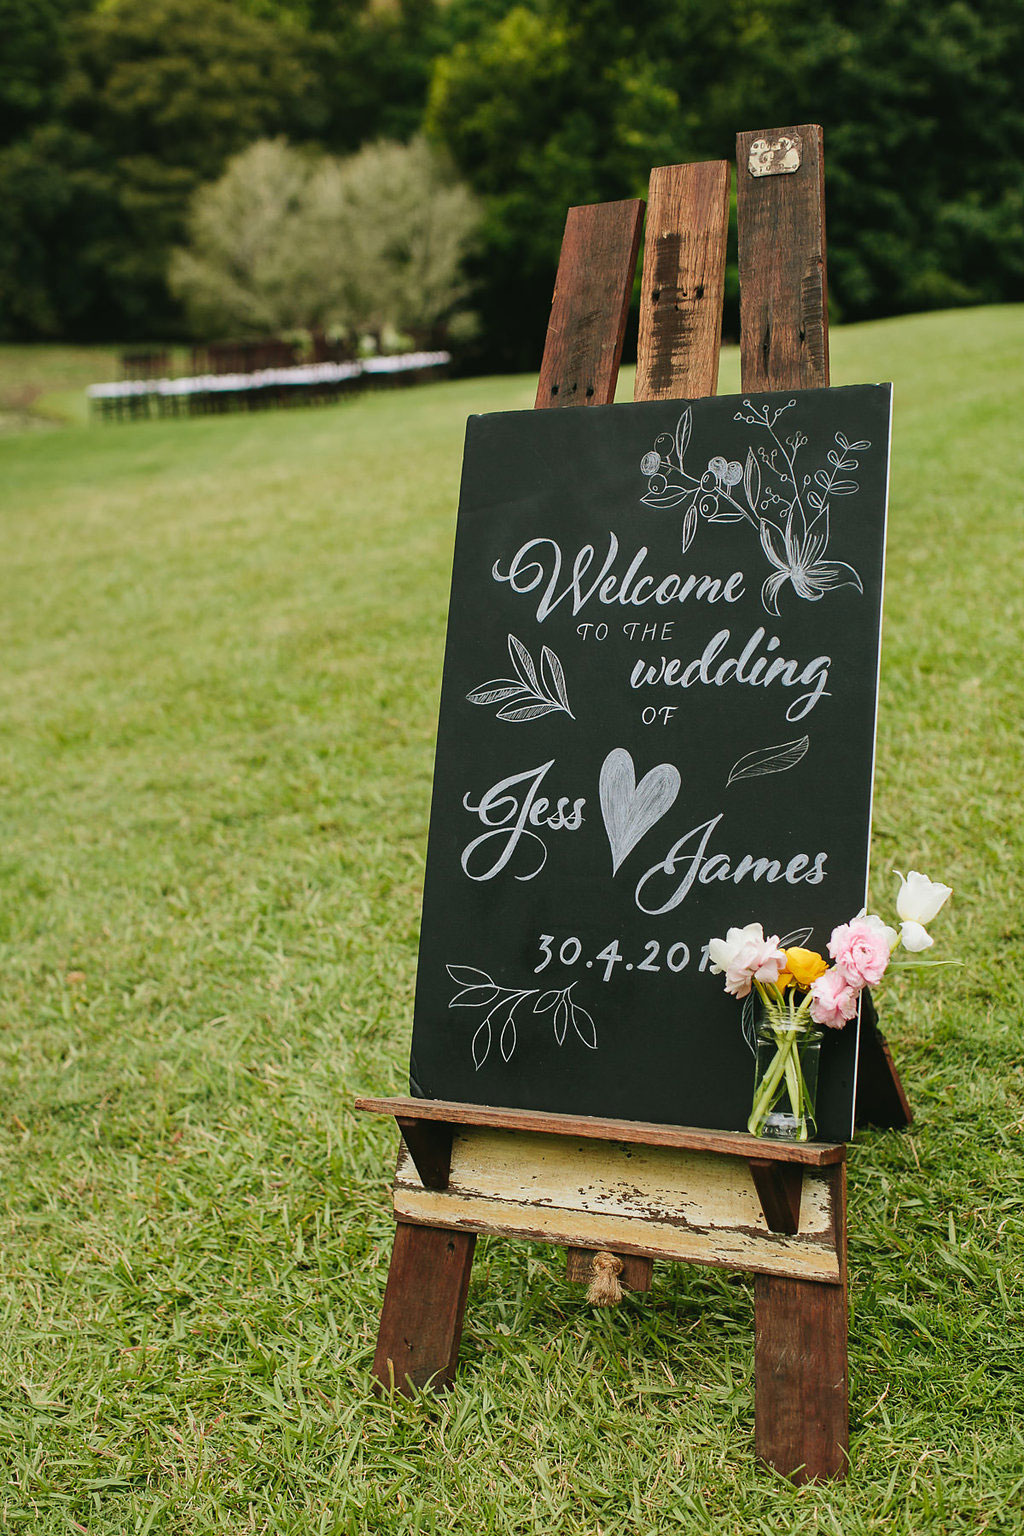 Original designs and lettering for an outdoor wedding in Byron Bay, Australia | www.chavelli.com